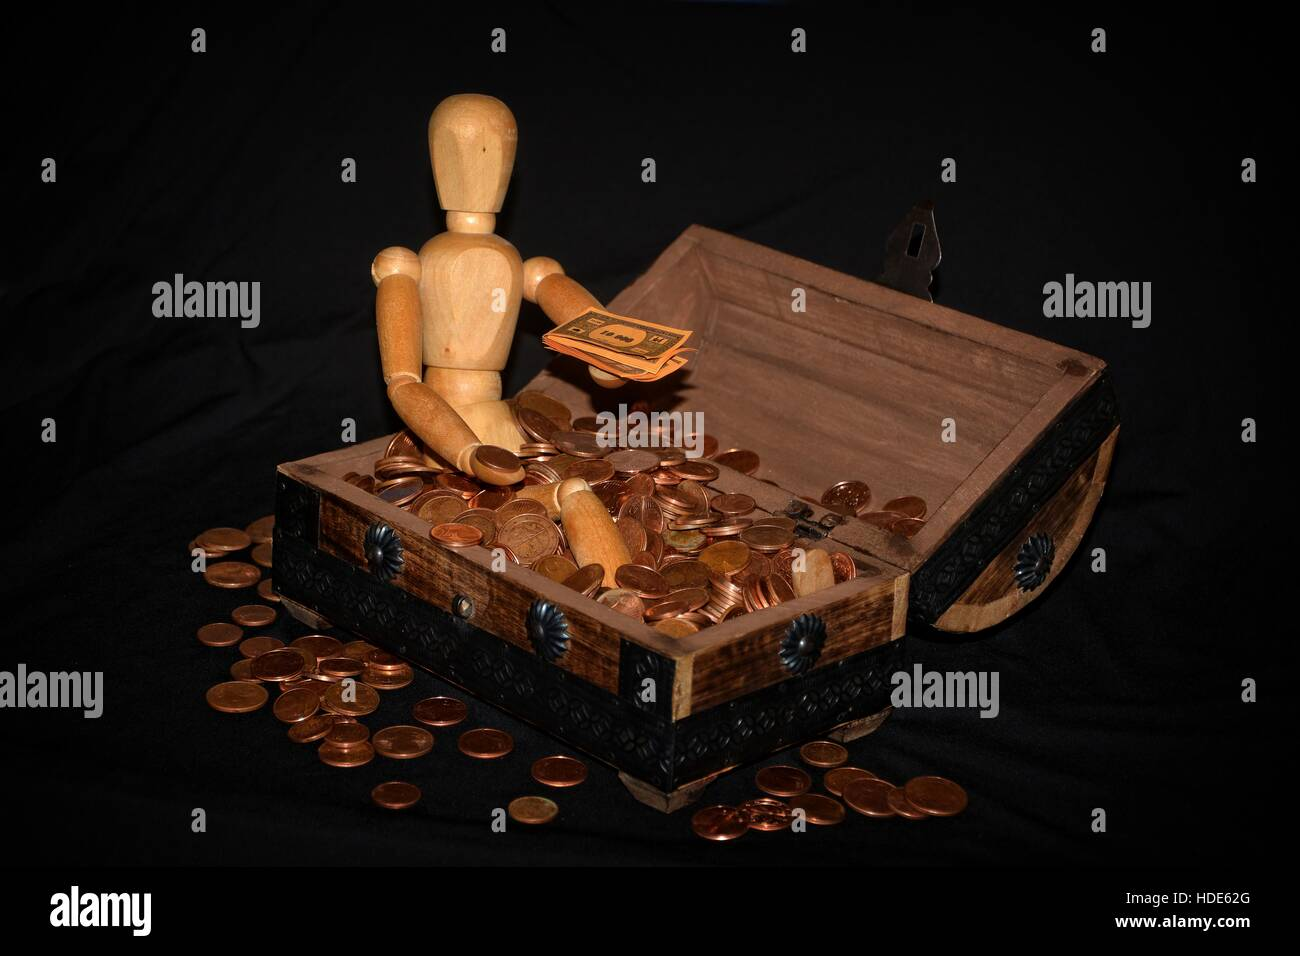 Wooden figure sitting in a wooden box with money, coin and bill on the hand and with dark background - Stock Image